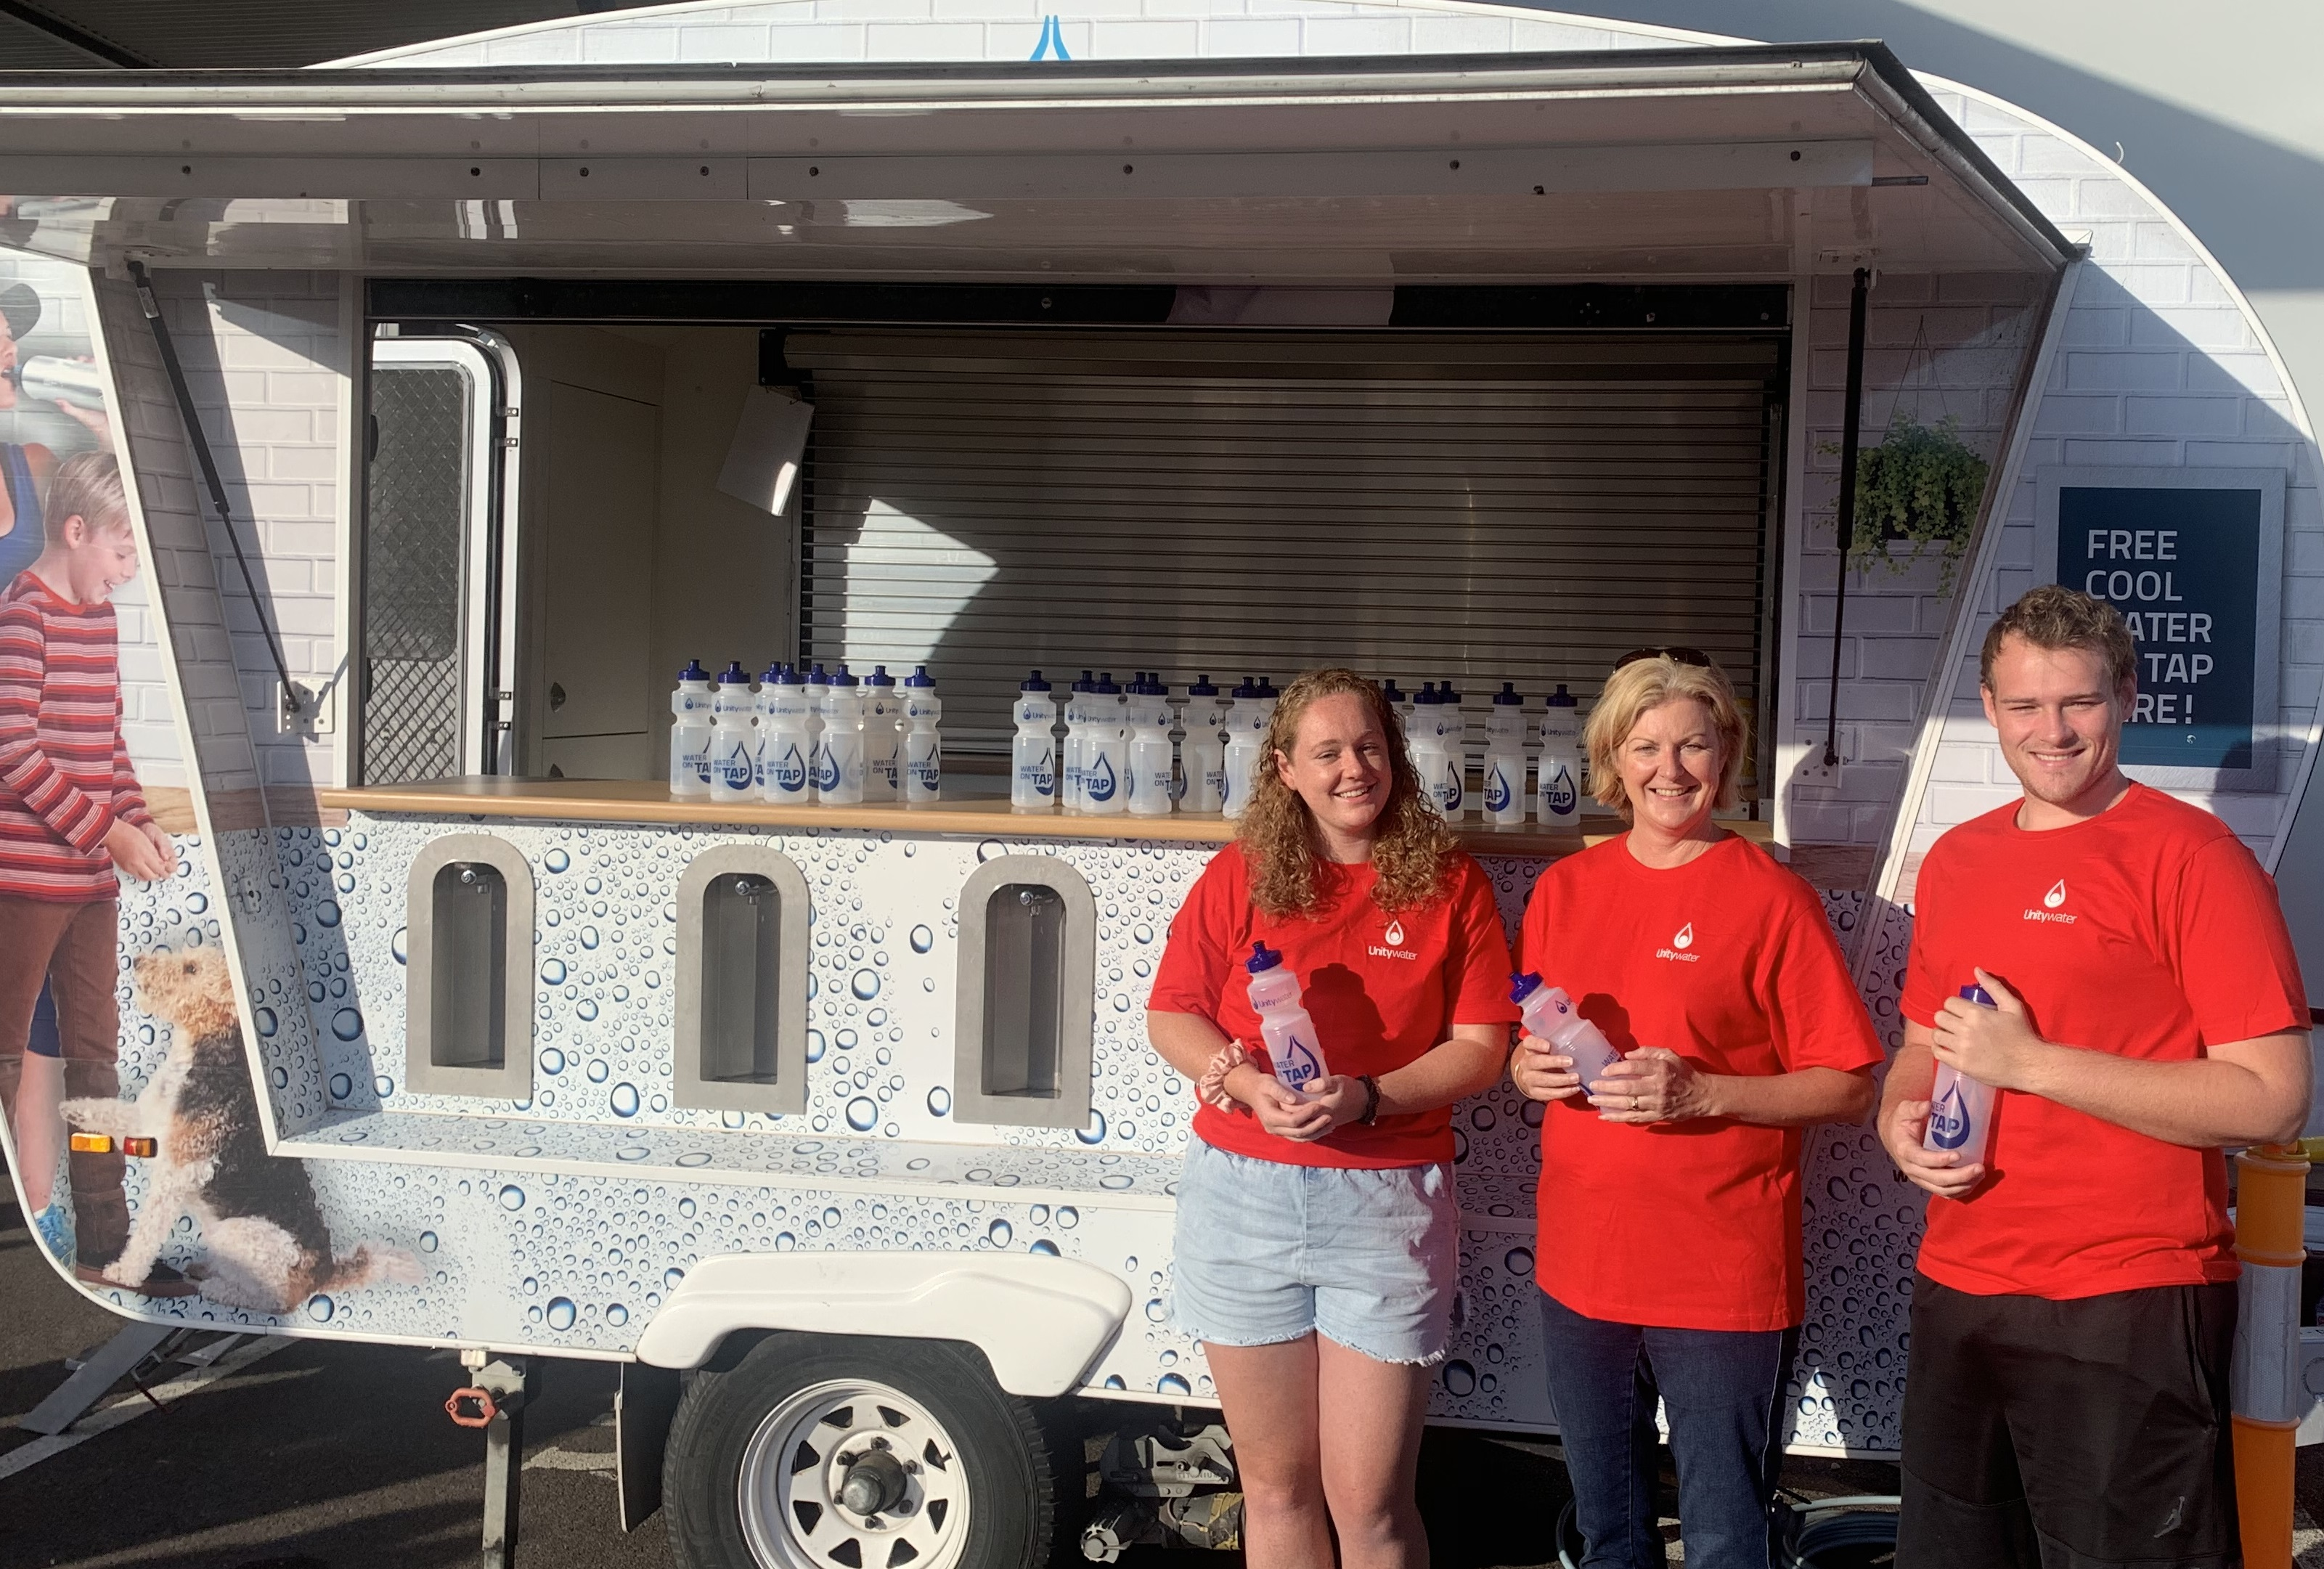 Water on tap van with volunteers